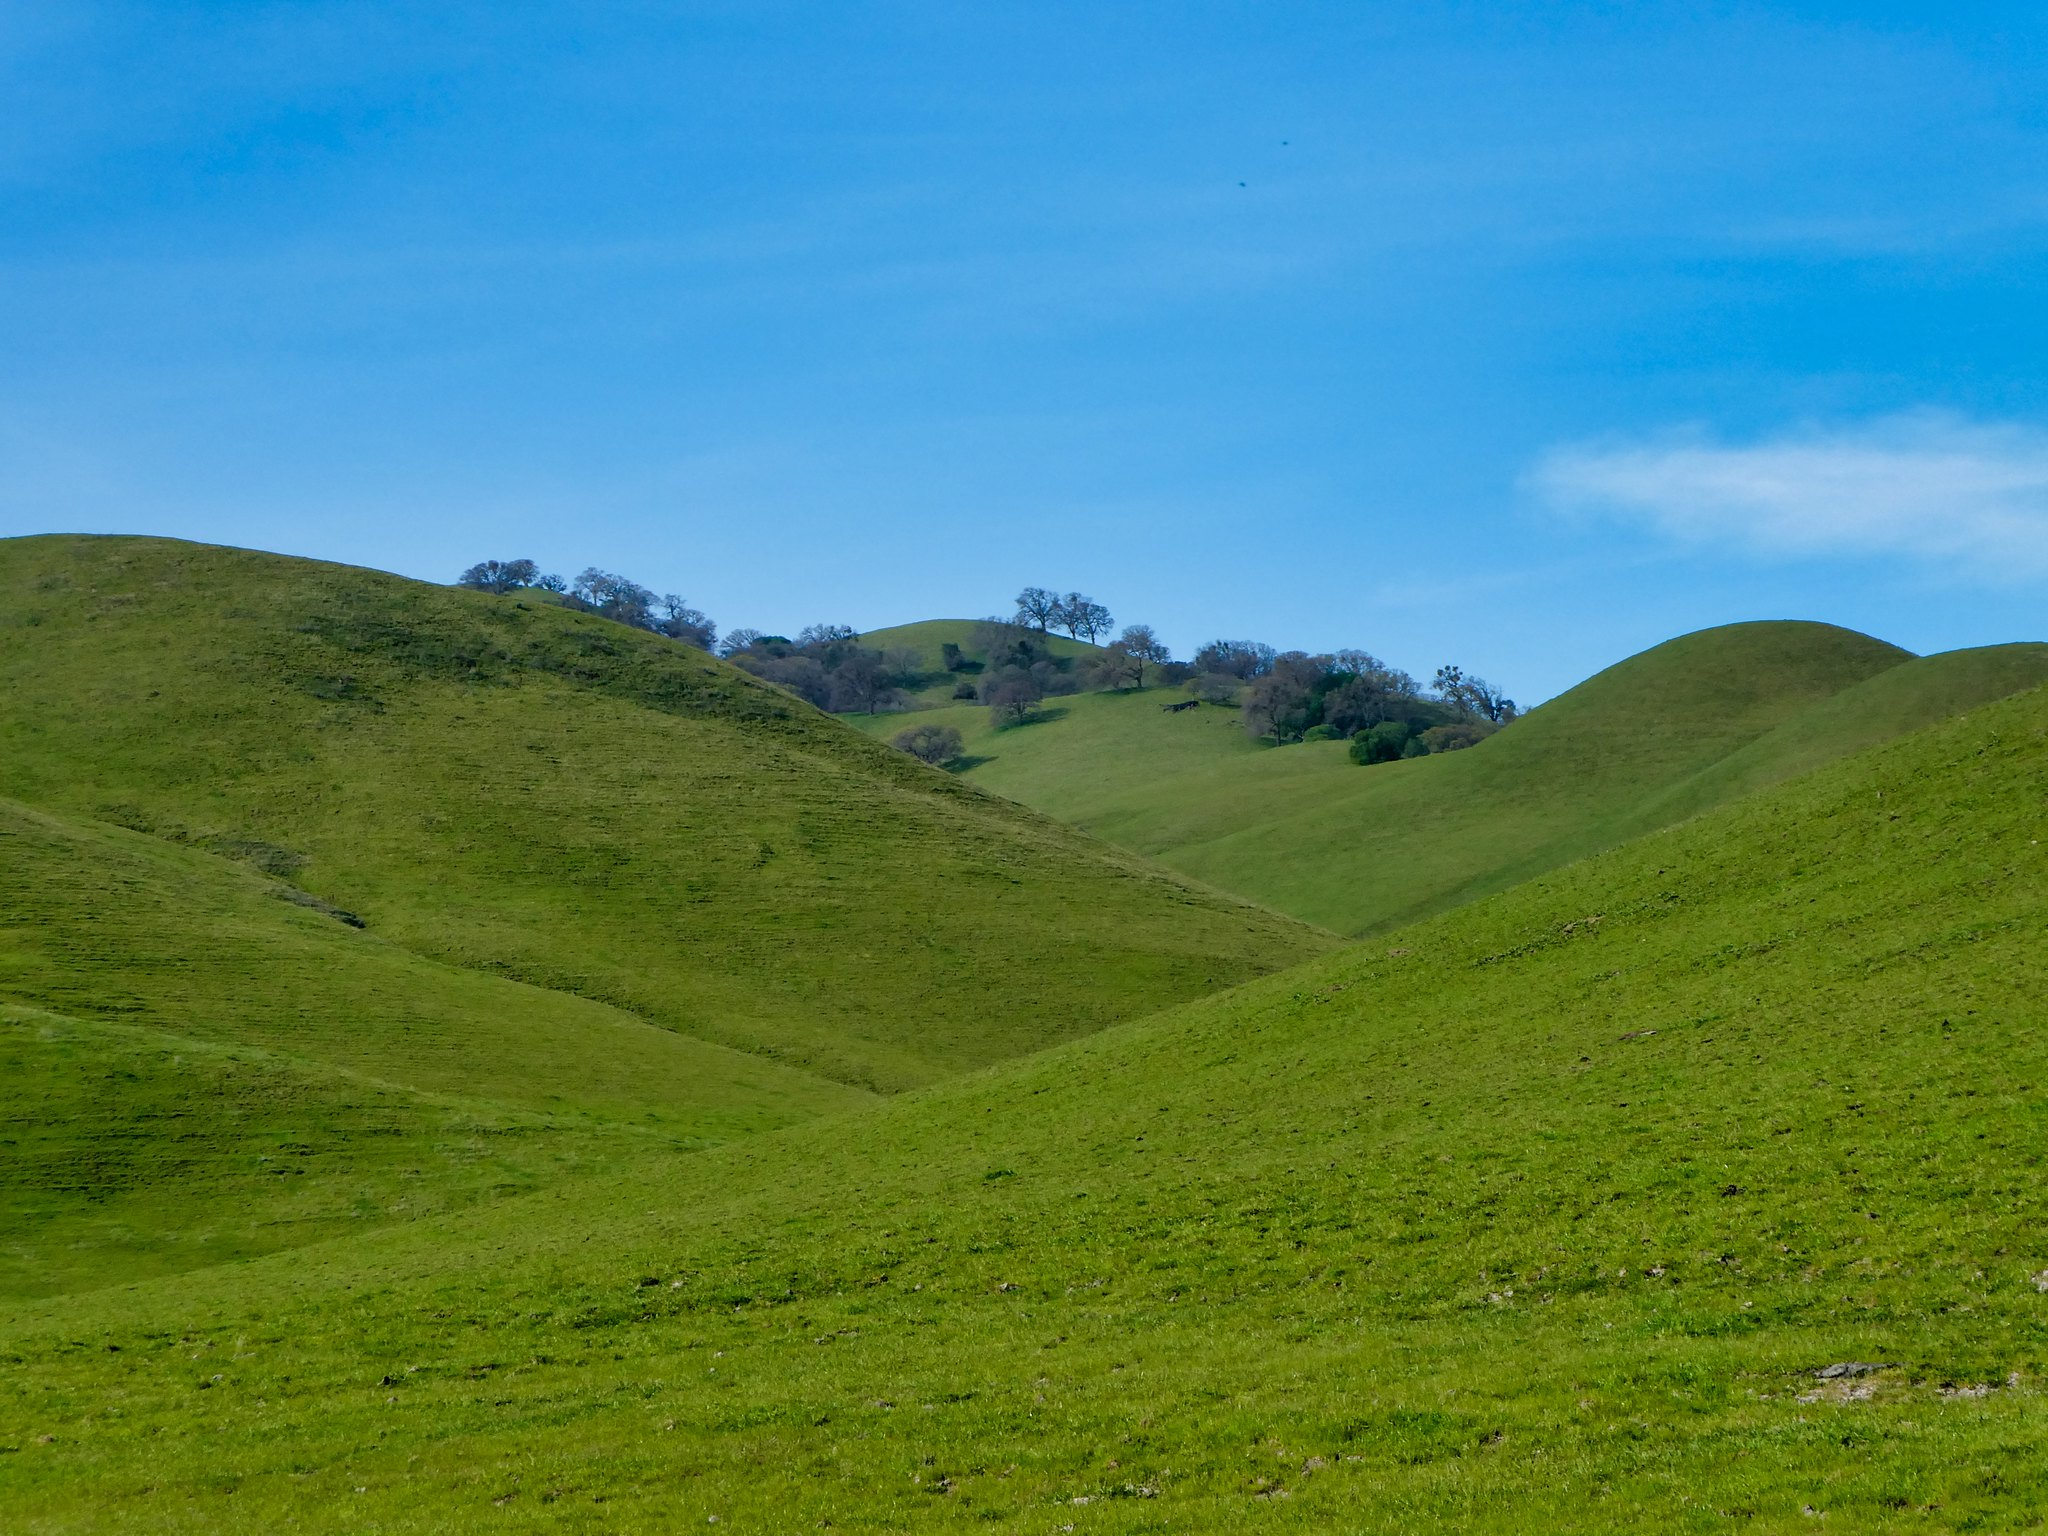 2019-03-17 - Landscape Photography - Nature - Black Diamond Mines Regional Preserve